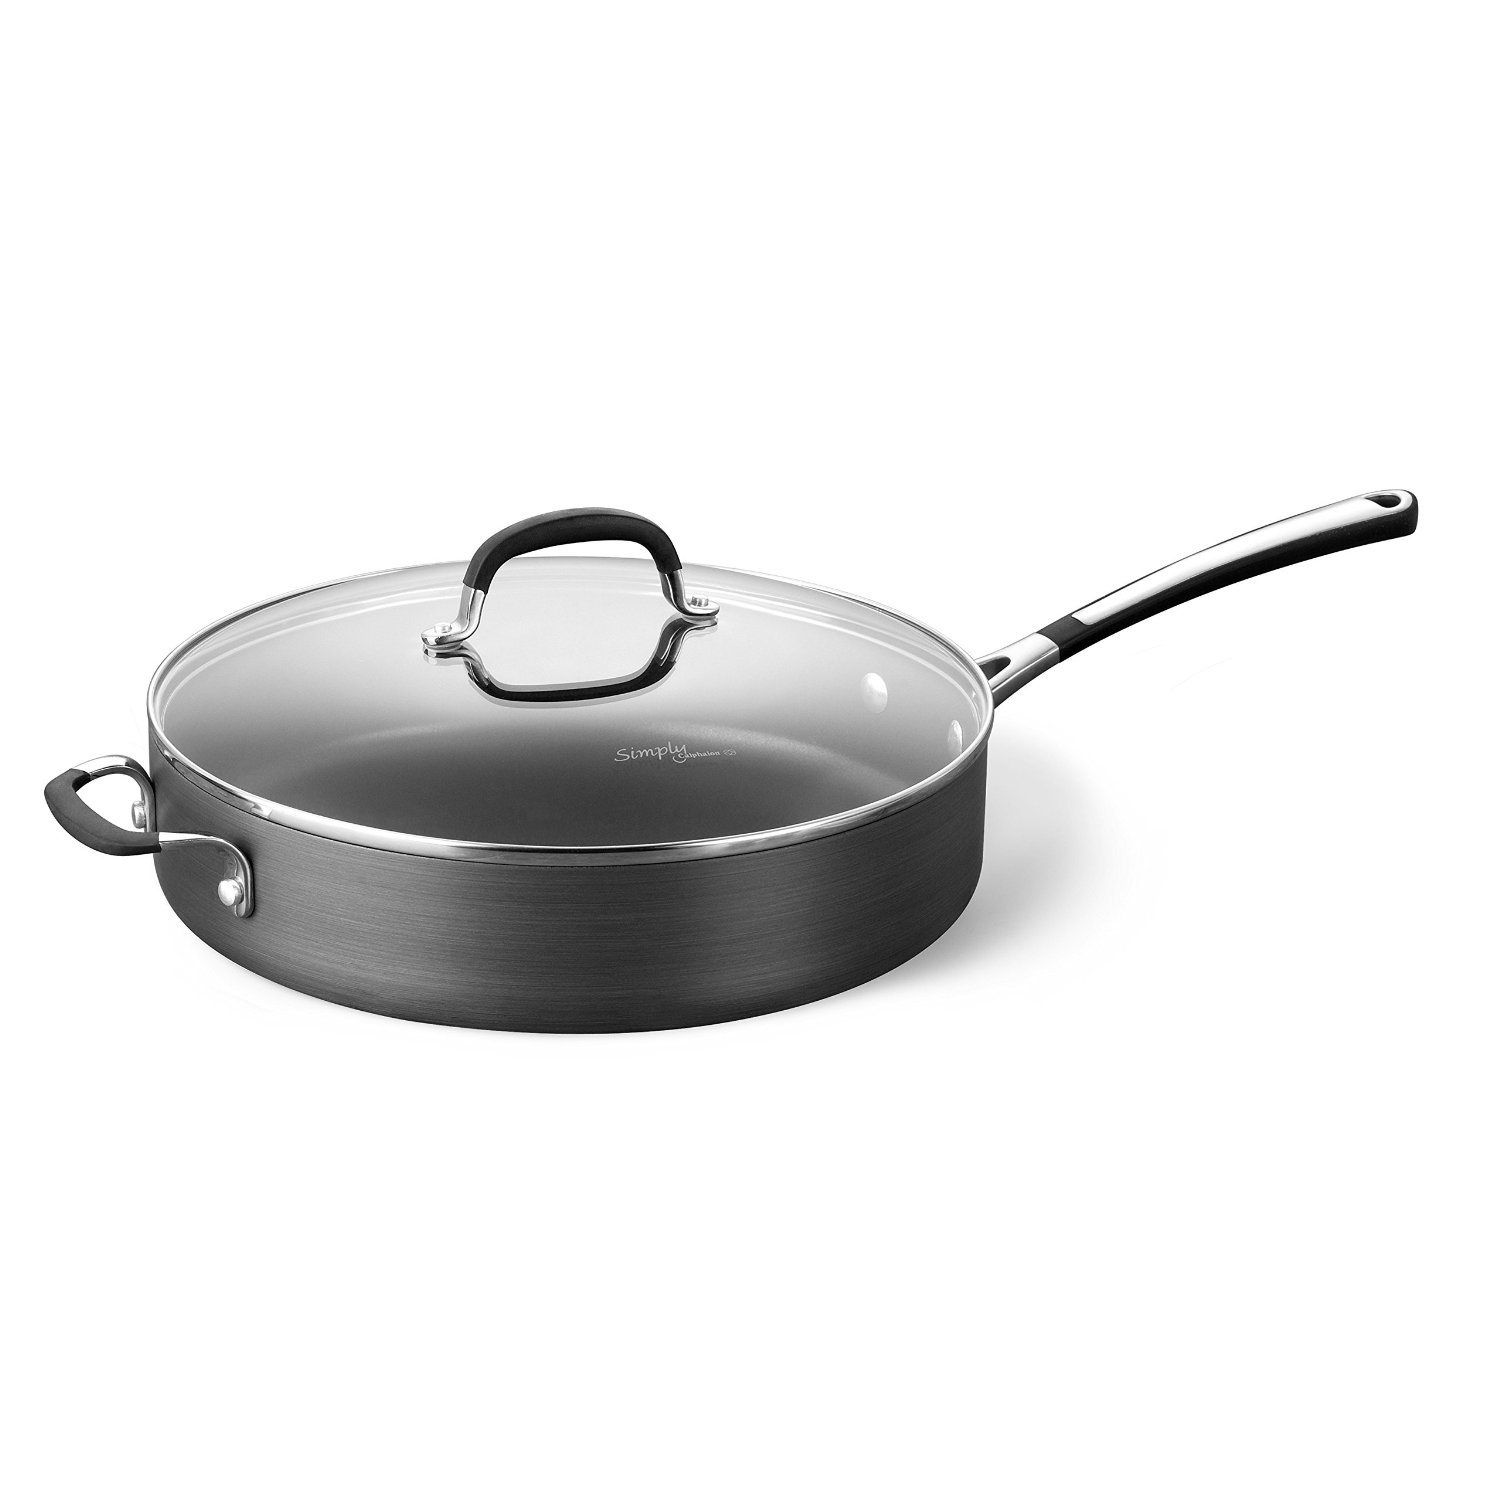 Top 10 Calphalon Cookware Reviews — Best Units Graded for You (2019)